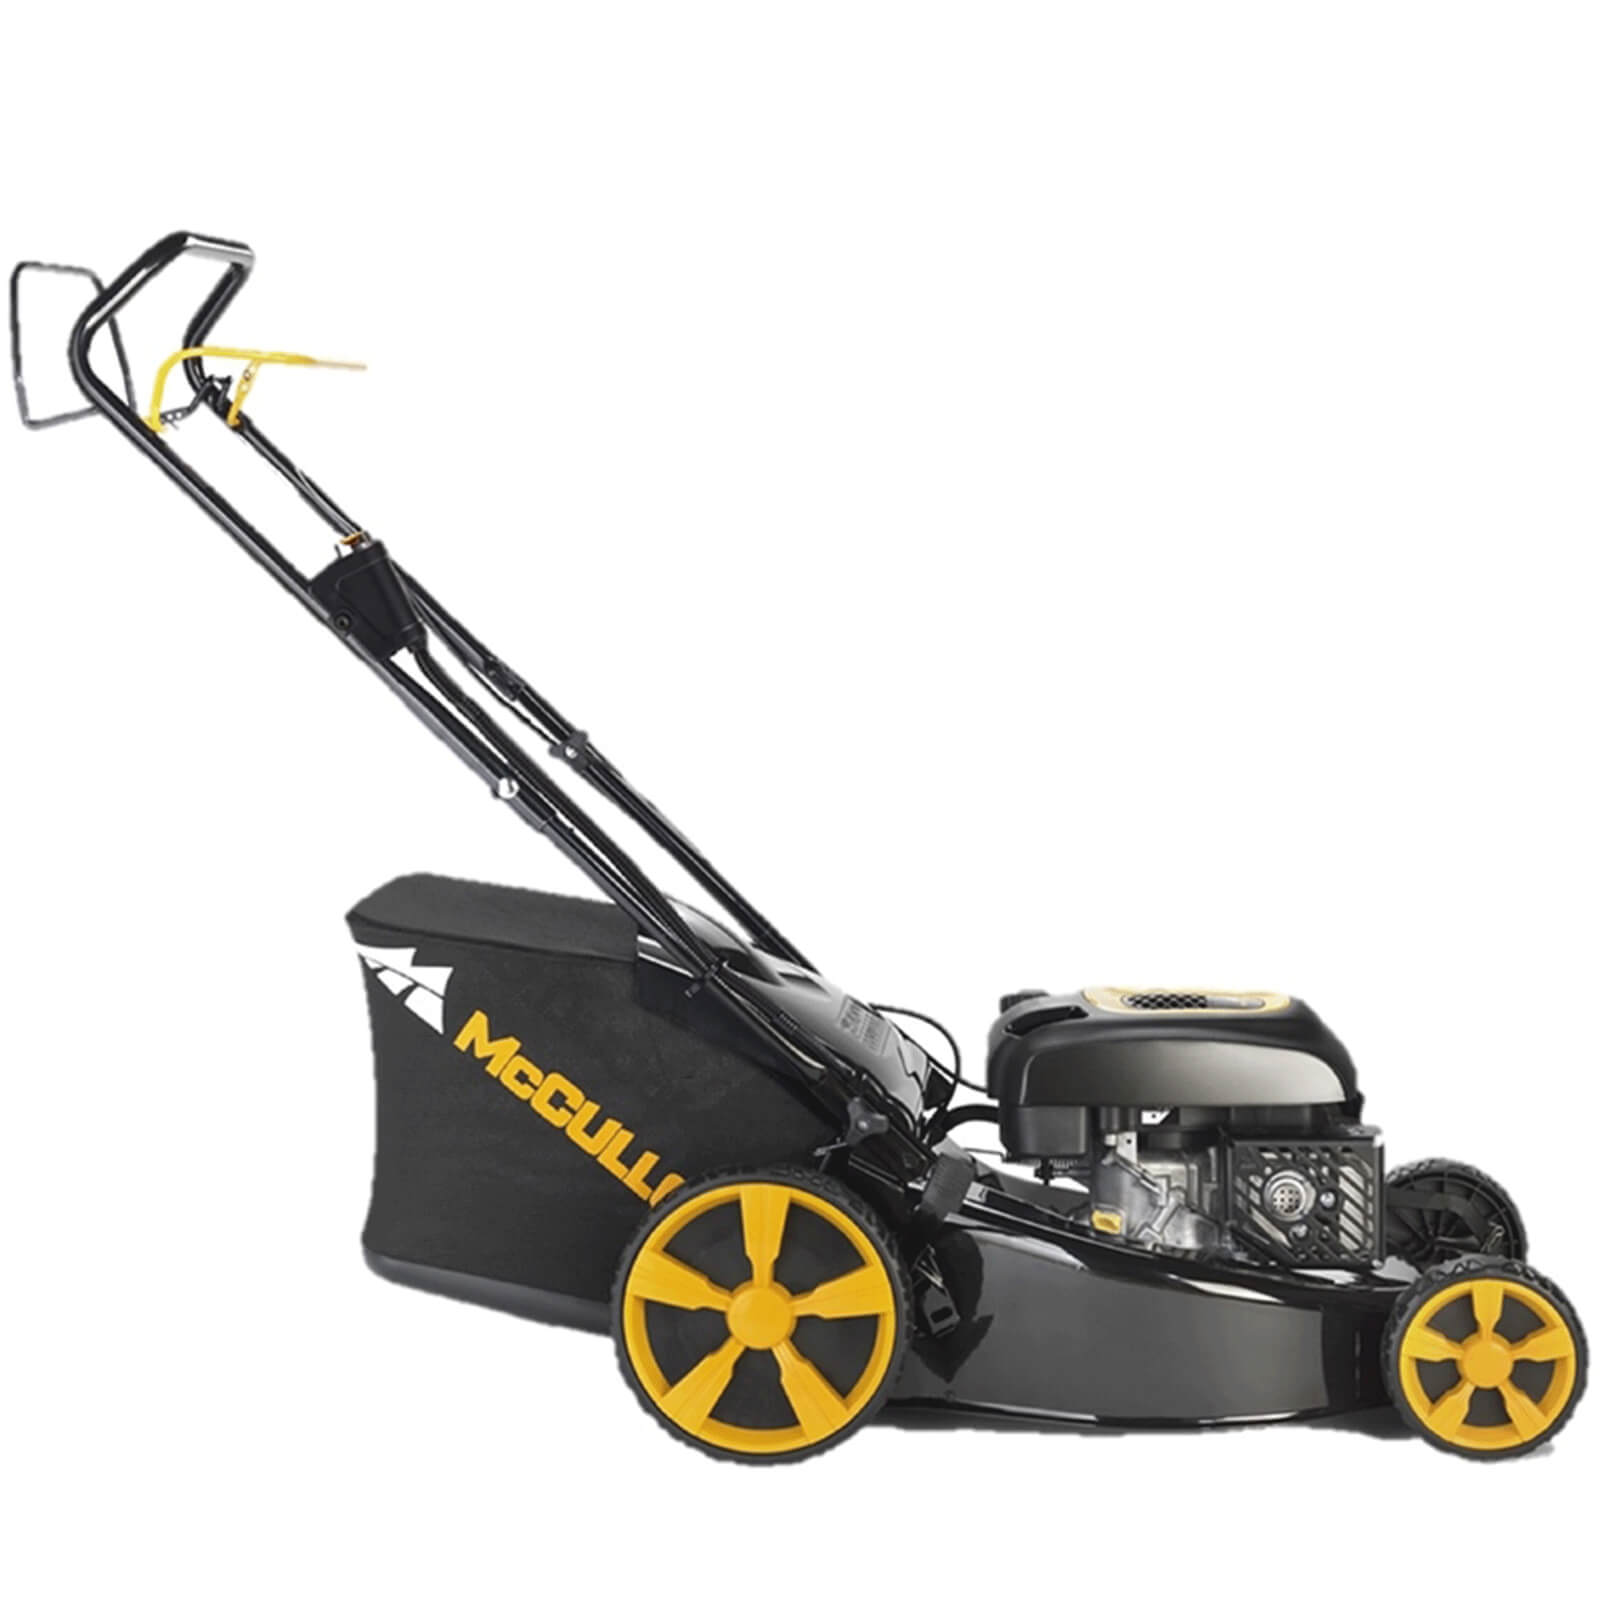 Image of McCulloch M51-174WRE Electric Start Self Propelled Petrol Rotary Lawnmower 510mm